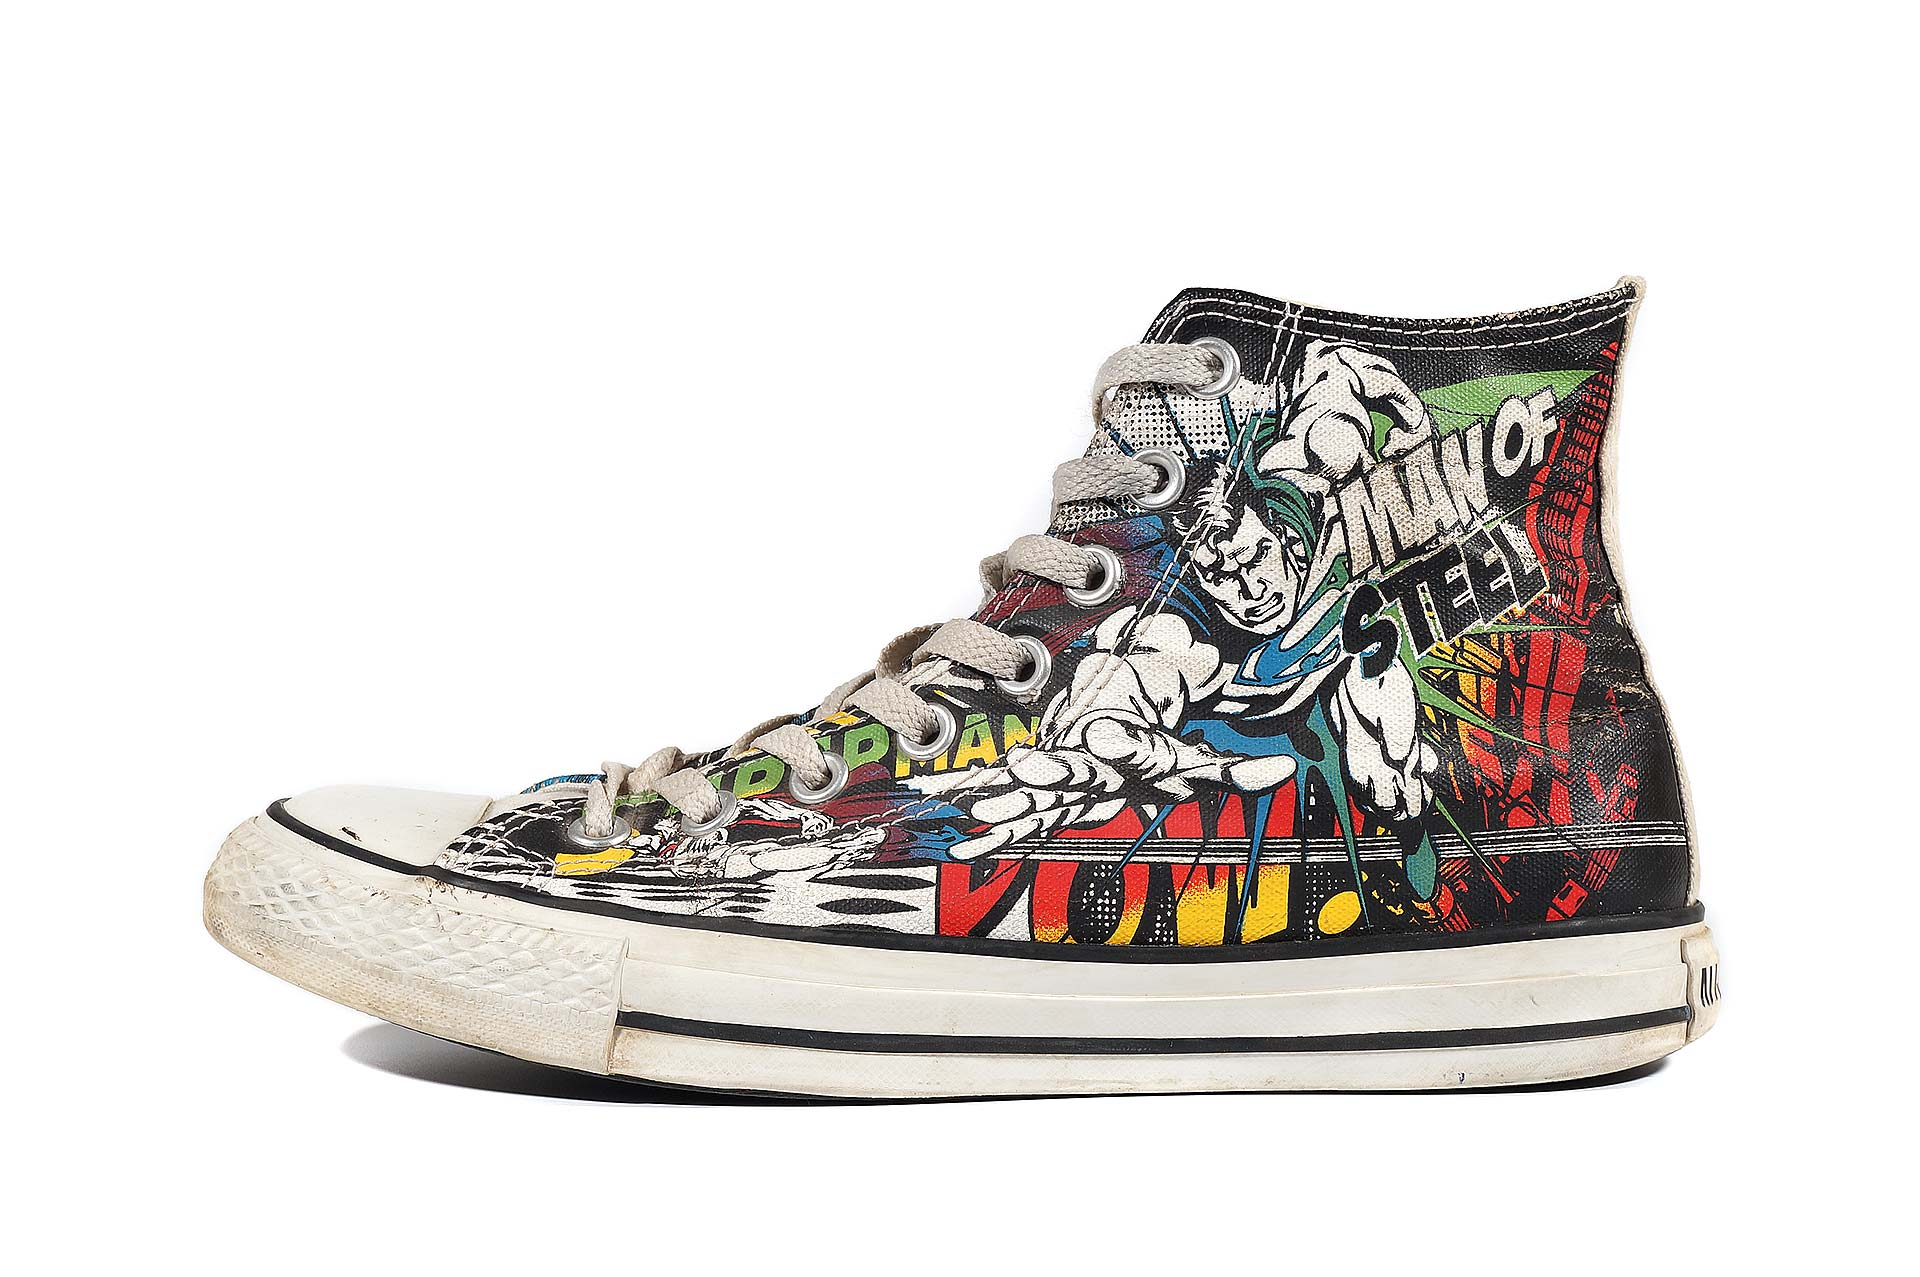 ac36e23529d9 Converse Chuck Taylor All Star DC Comics Superman 120822 (00017-U) sneakers  used buy online shop vintageshoes.ru